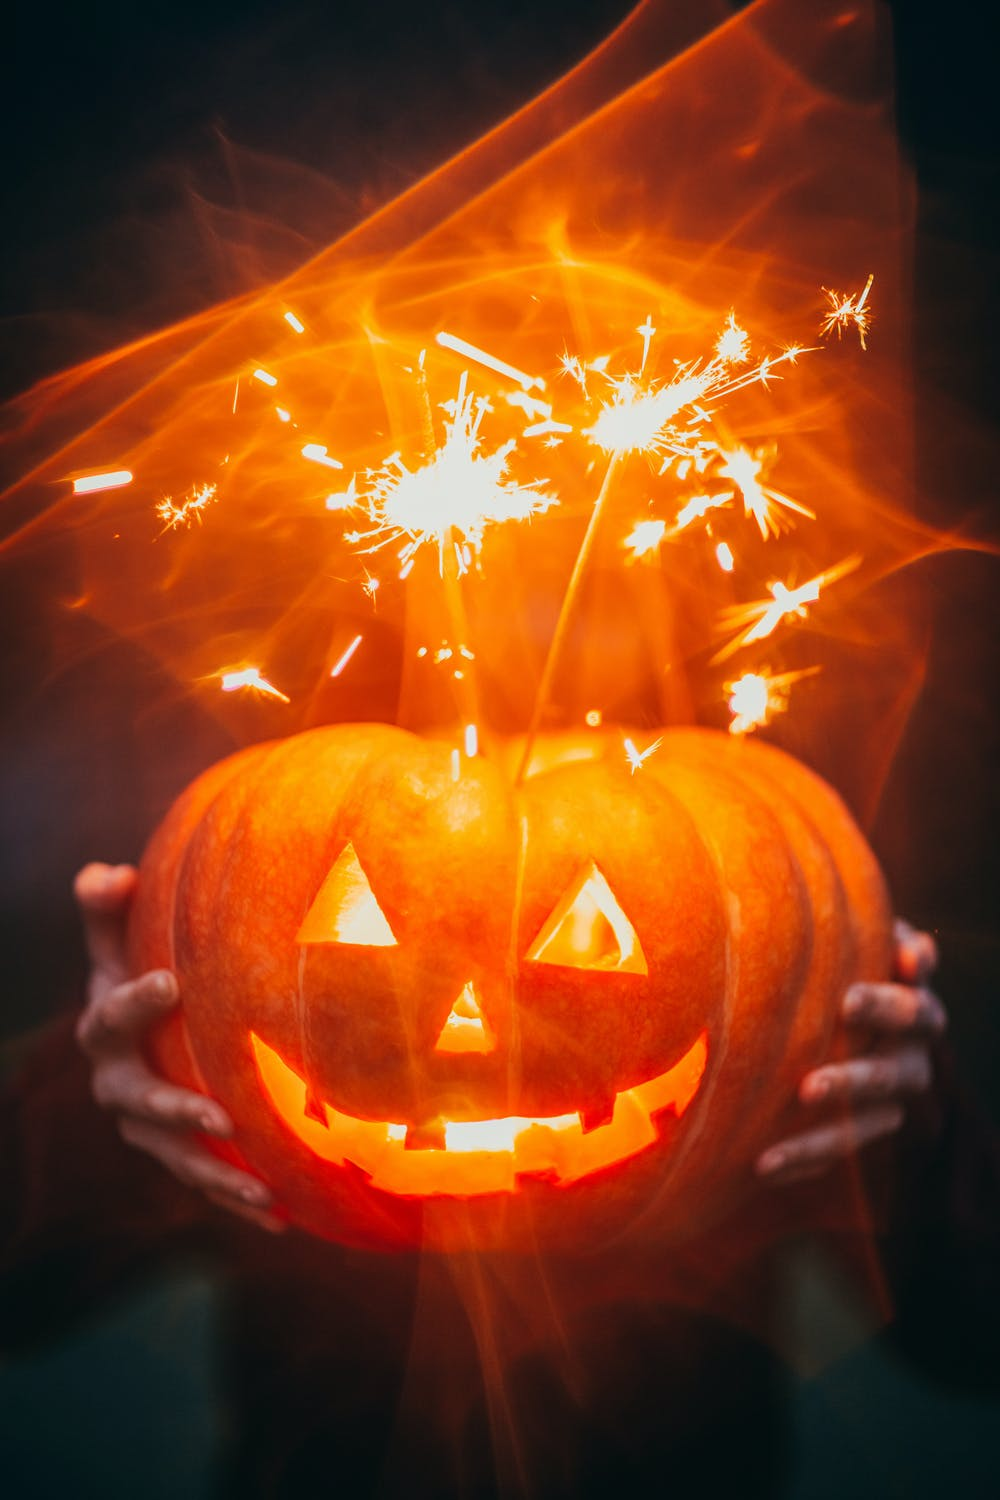 Tips for Keeping Your Home Safe on Halloween